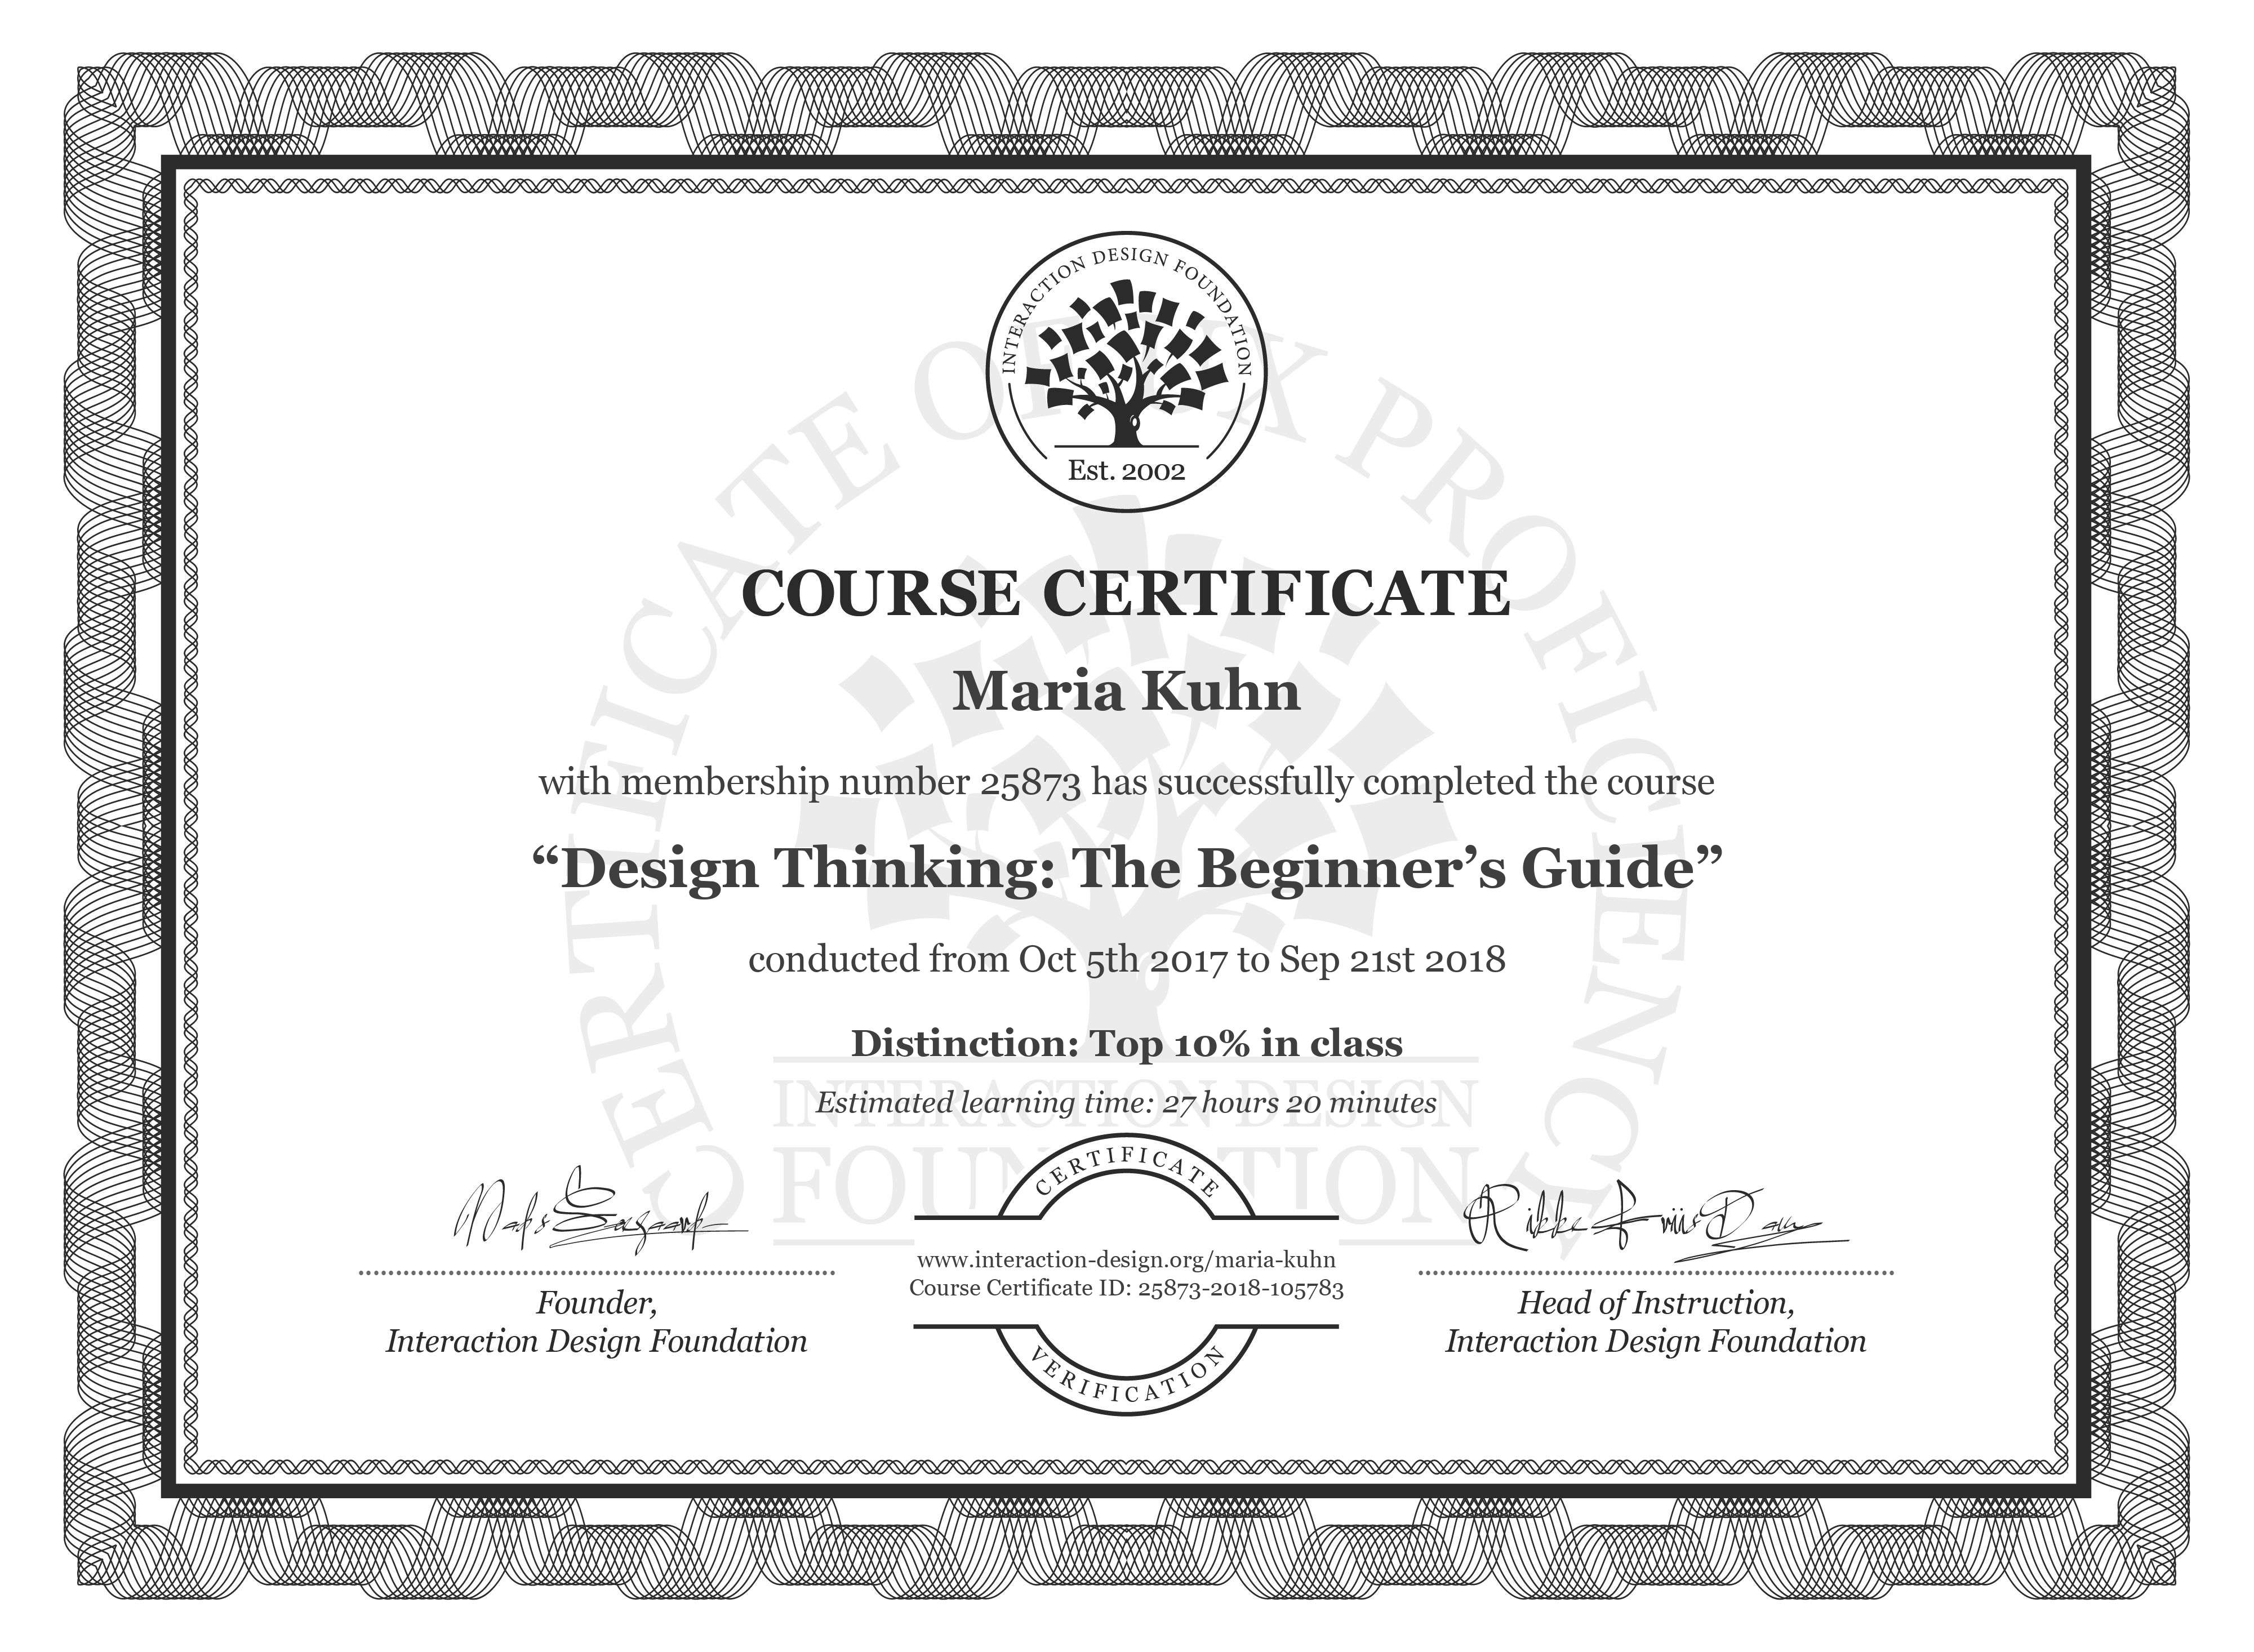 Maria Kuhn's Course Certificate: Design Thinking: The Beginner's Guide